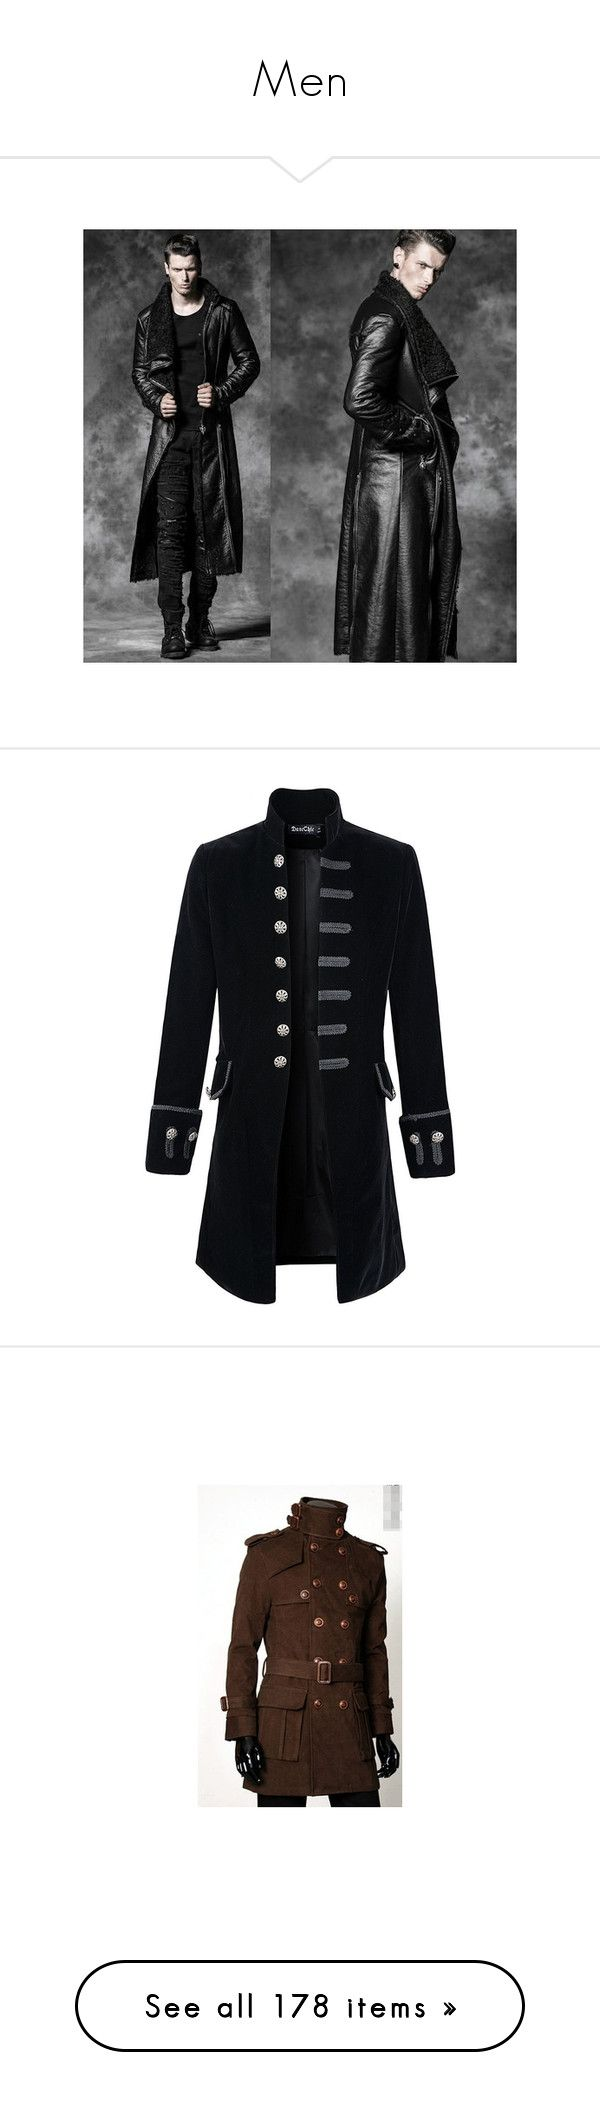 """Men"" by smilxngstars on Polyvore featuring men's fashion, men's clothing, men's outerwear, men's coats, mens gothic trench coat, mens red trench coat, mens trenchcoat, mens gothic coats, outerwear und mens victorian frock coat"